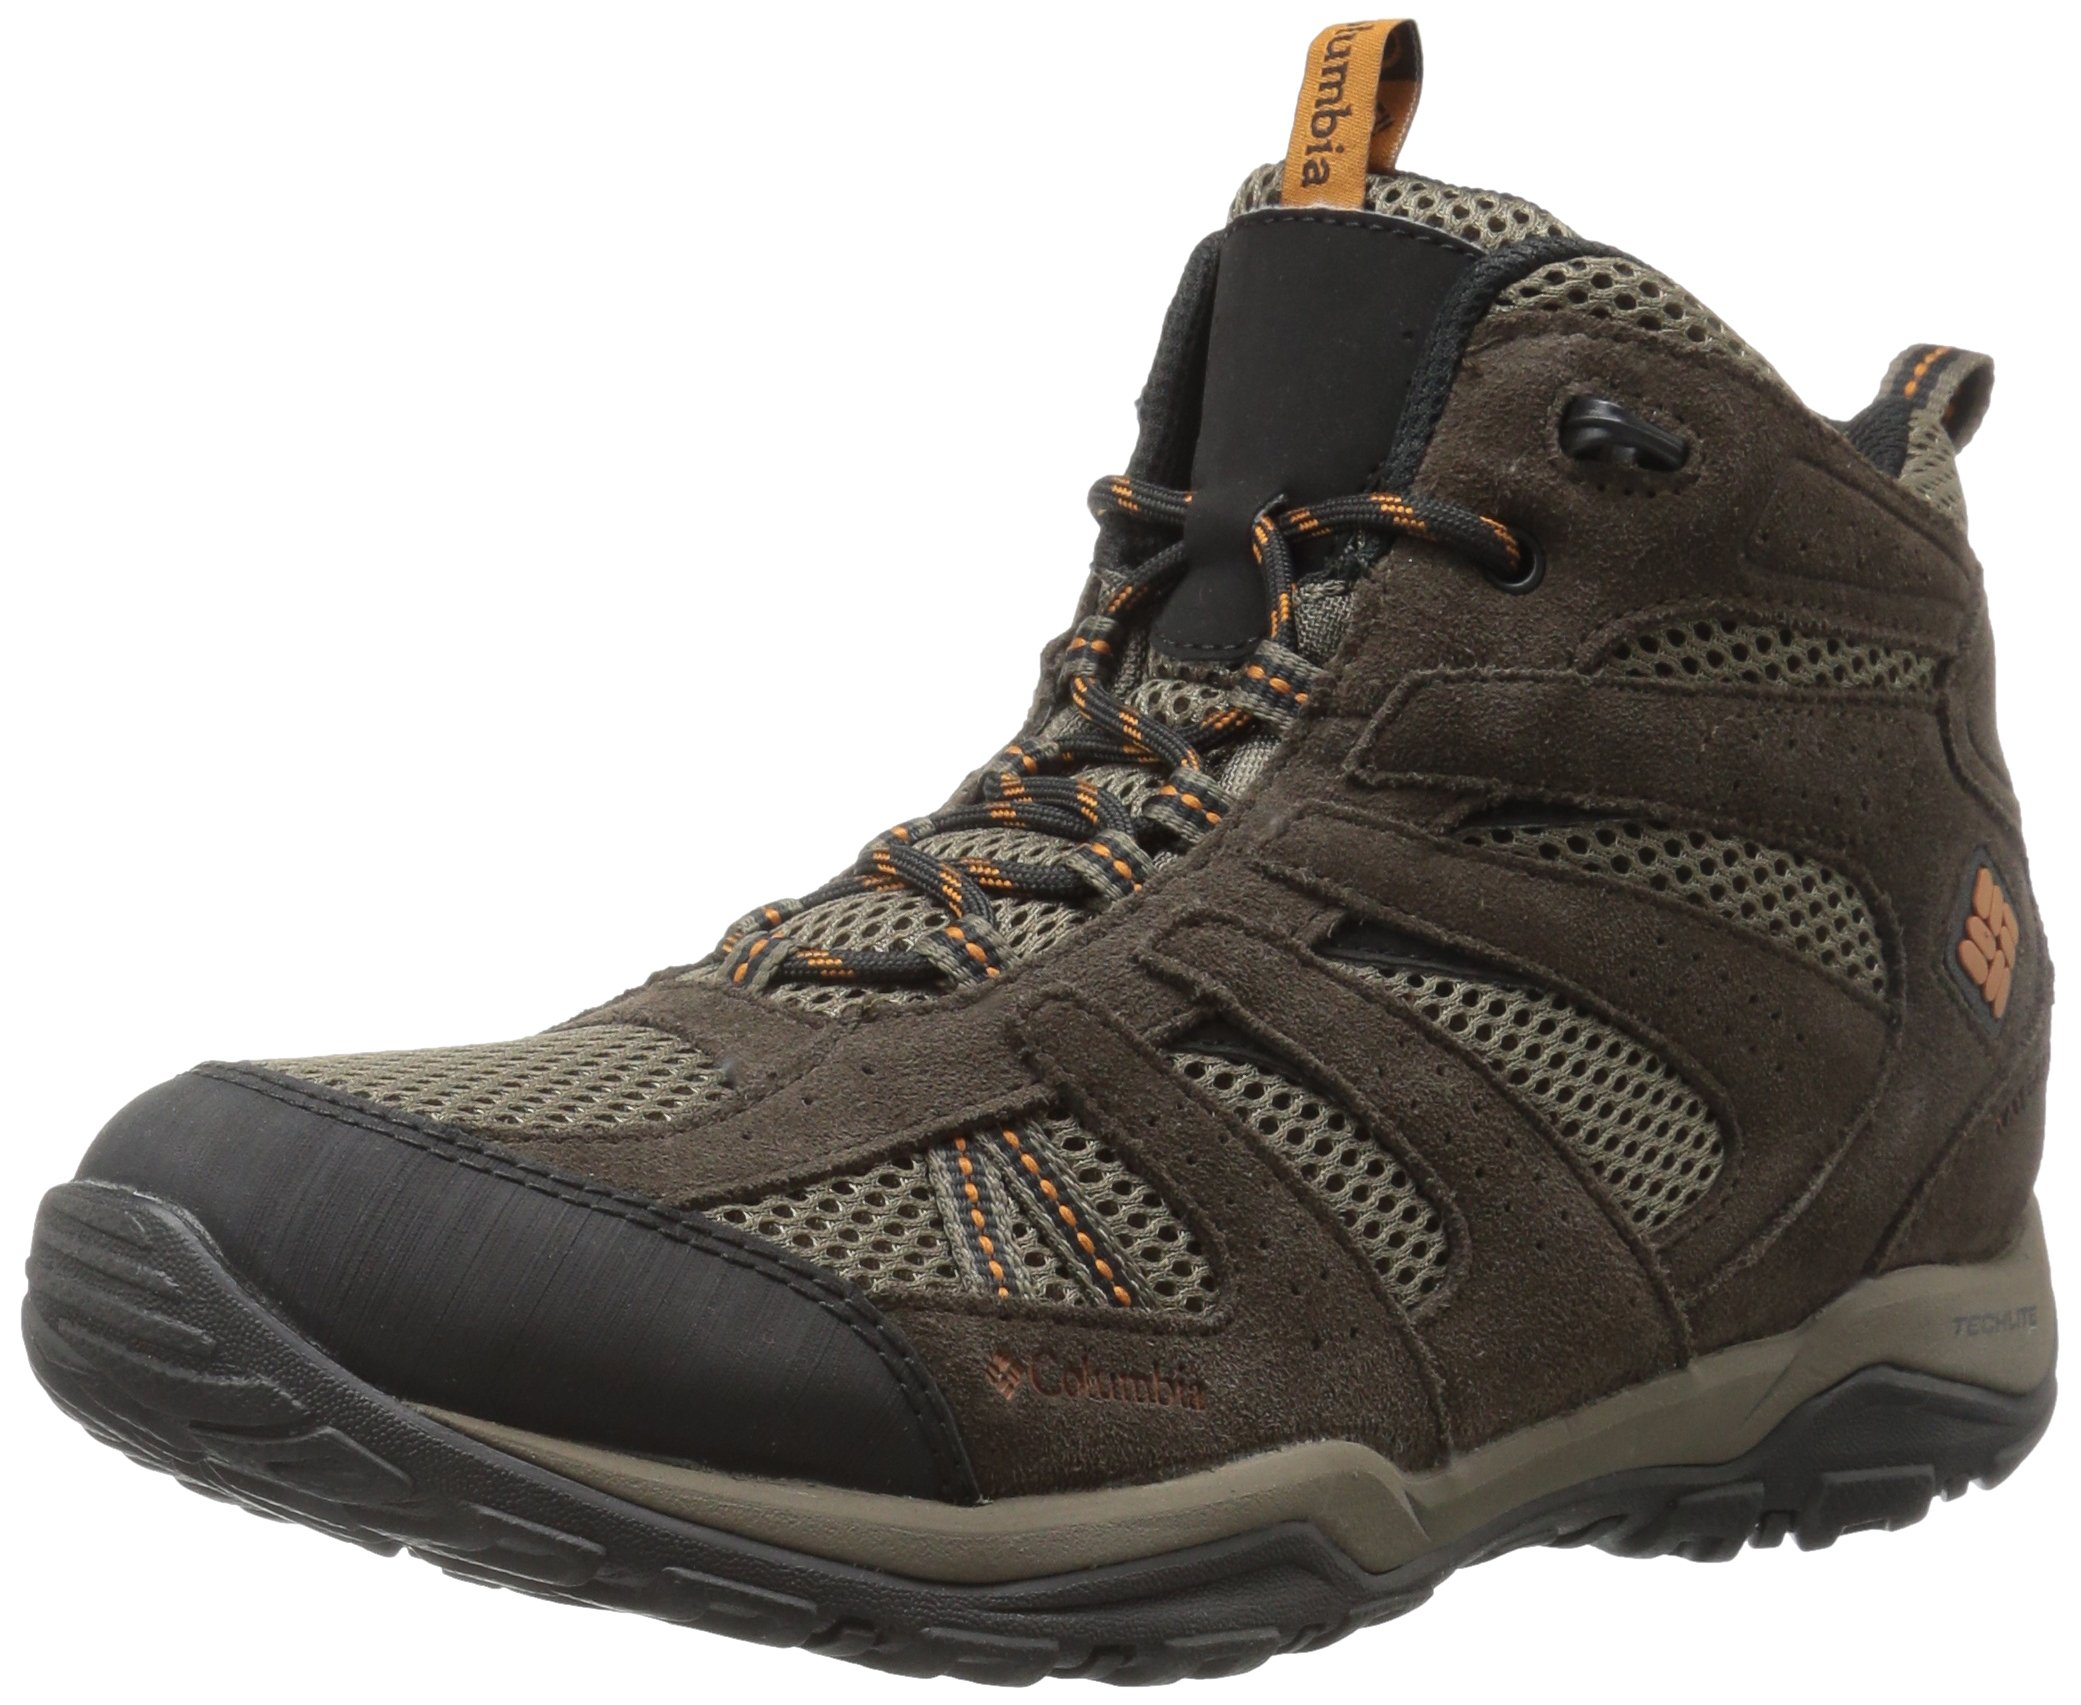 Columbia Men's North Plains Drifter Mid Waterproof Hiking Boot, Mud, Bright Copper, 11.5 D US